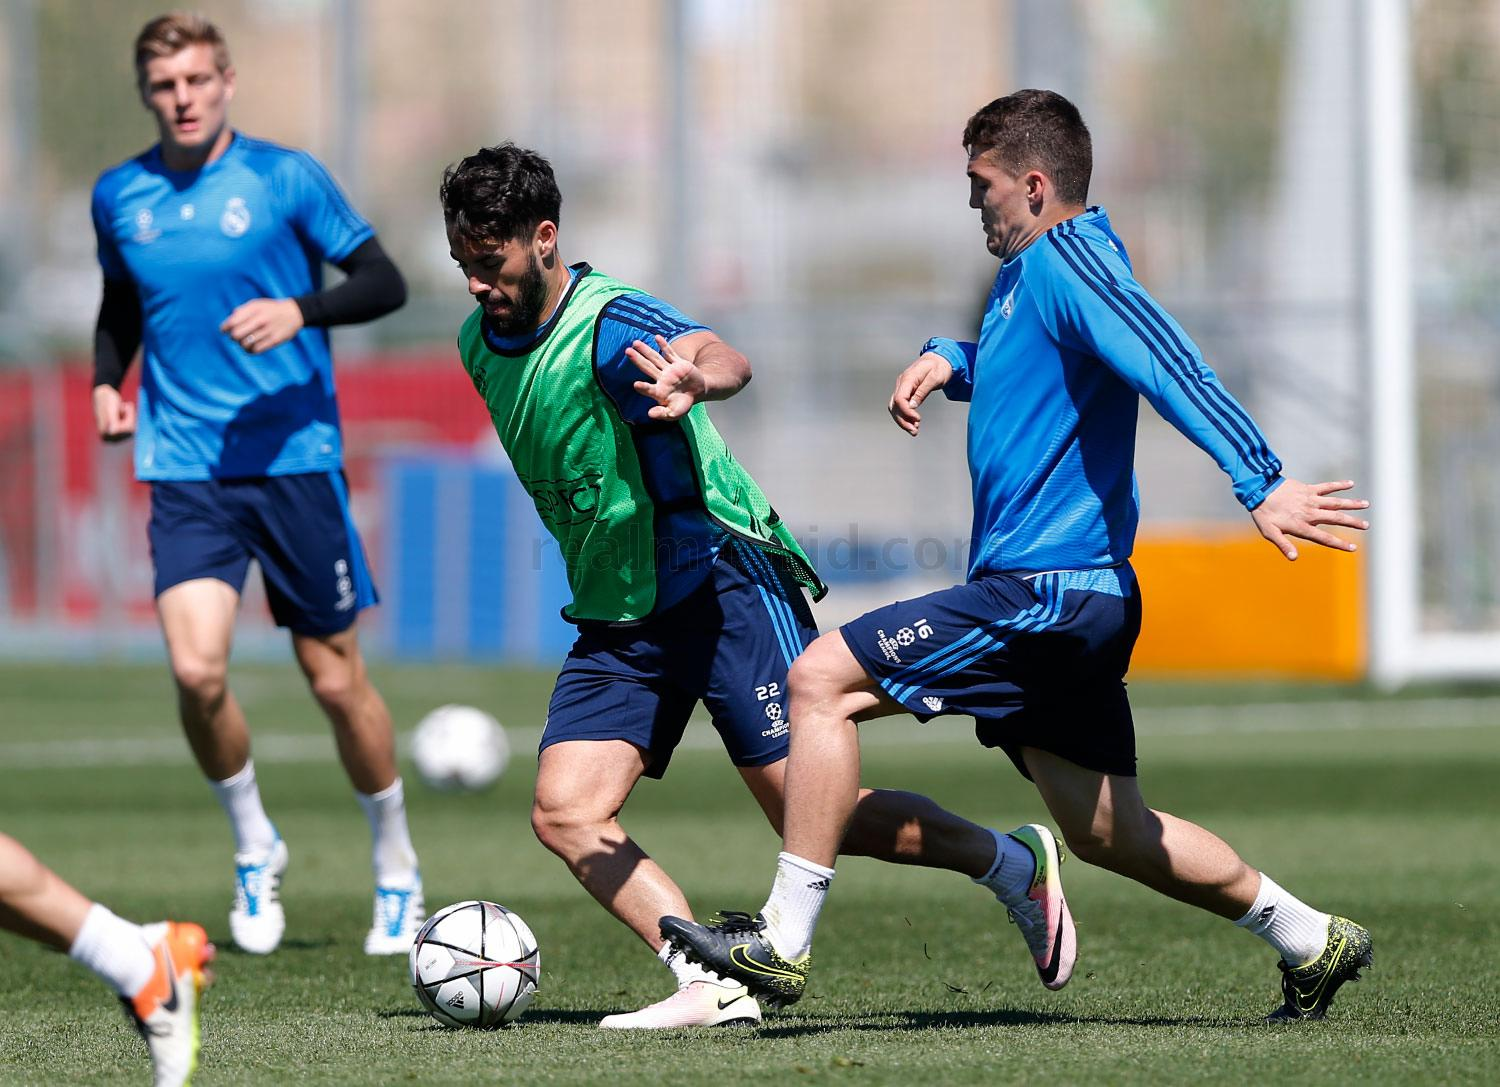 Real Madrid - Entrenamiento del Real Madrid - 03-05-2016